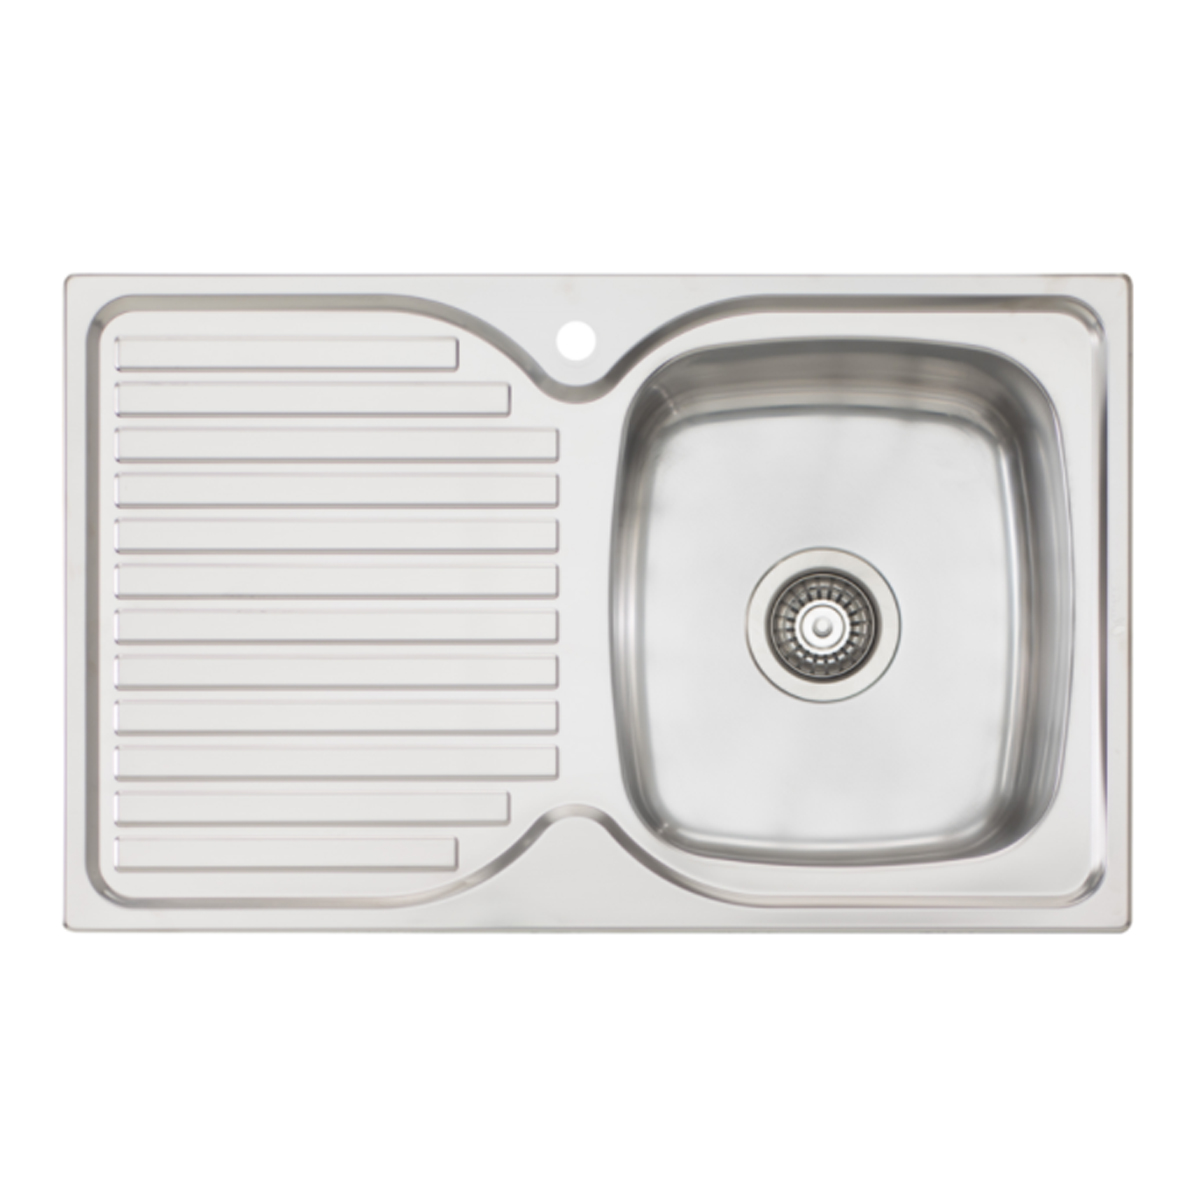 Oliveri EE22 Endeavour Single Bowl Sink With Drainer